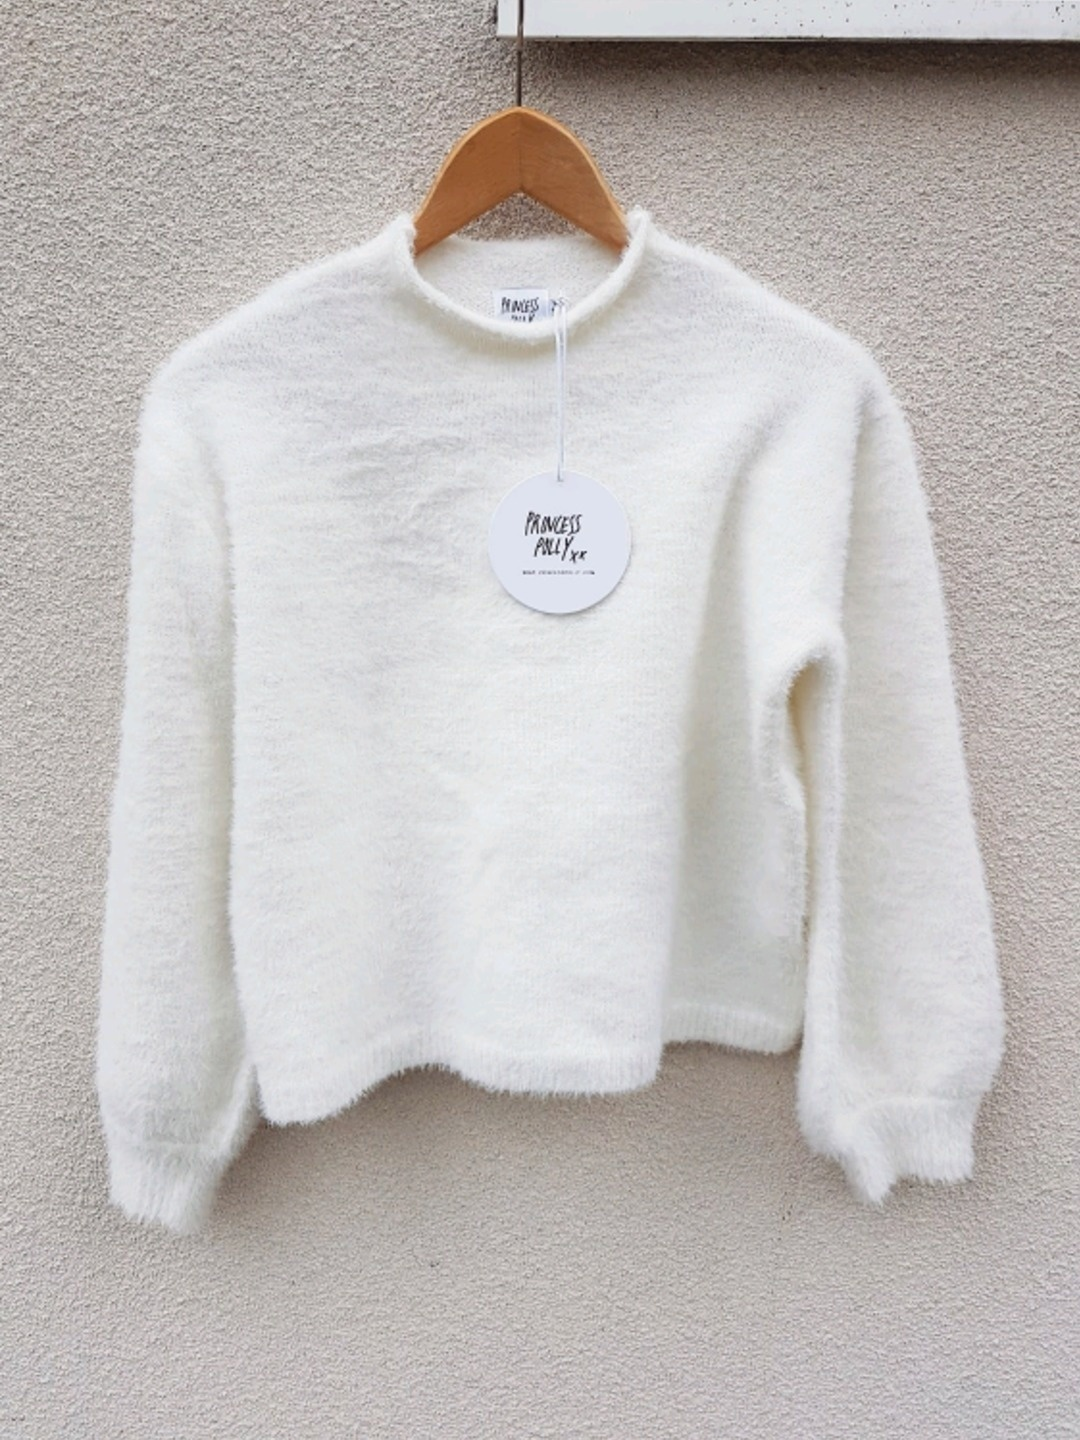 Women's jumpers & cardigans - PRINCESS POLLY photo 1